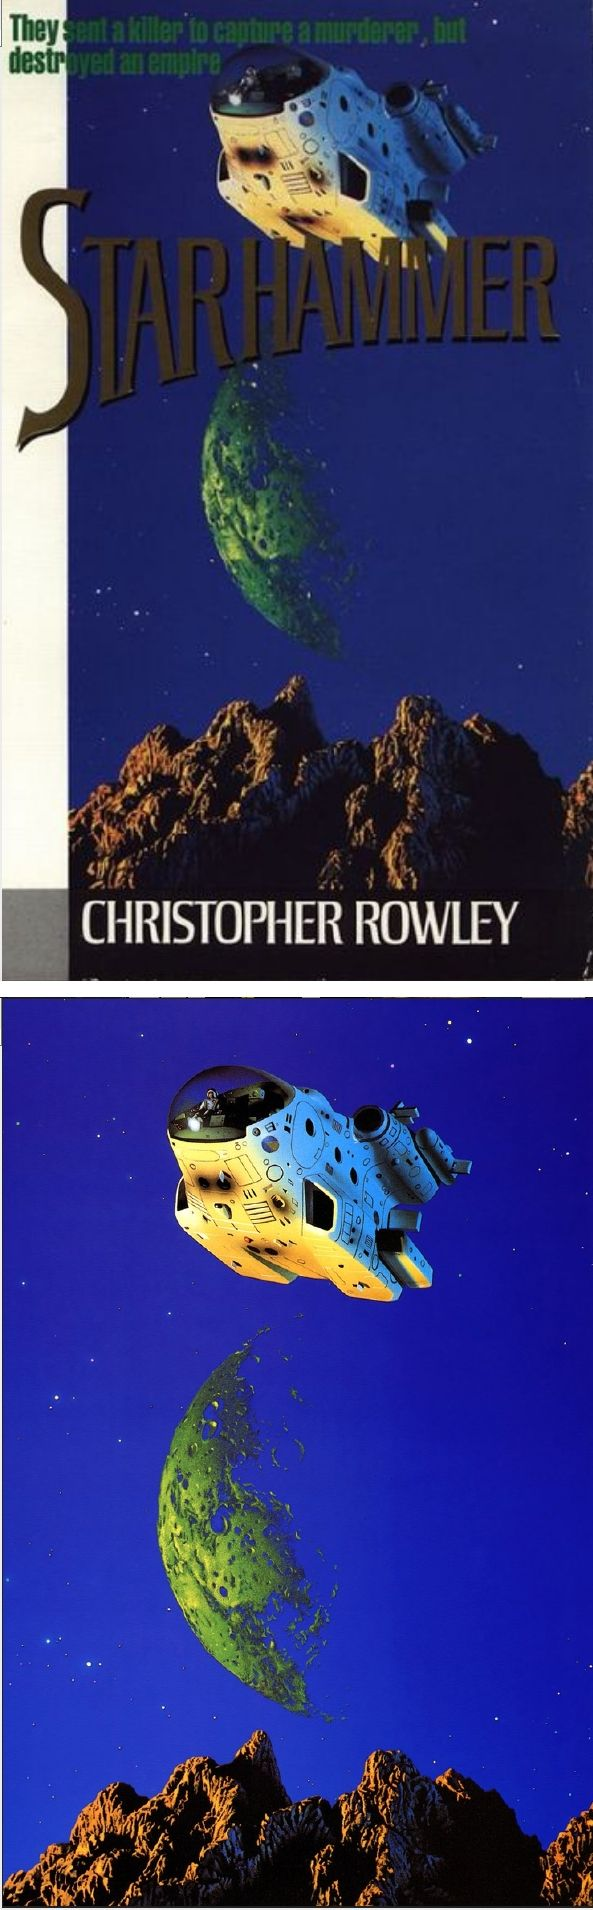 TIM WHITE - Star Hammer by Christopher Rowley - 1987 Arrow Books - cover by isfdb - print by dbimaginarte.blogspot